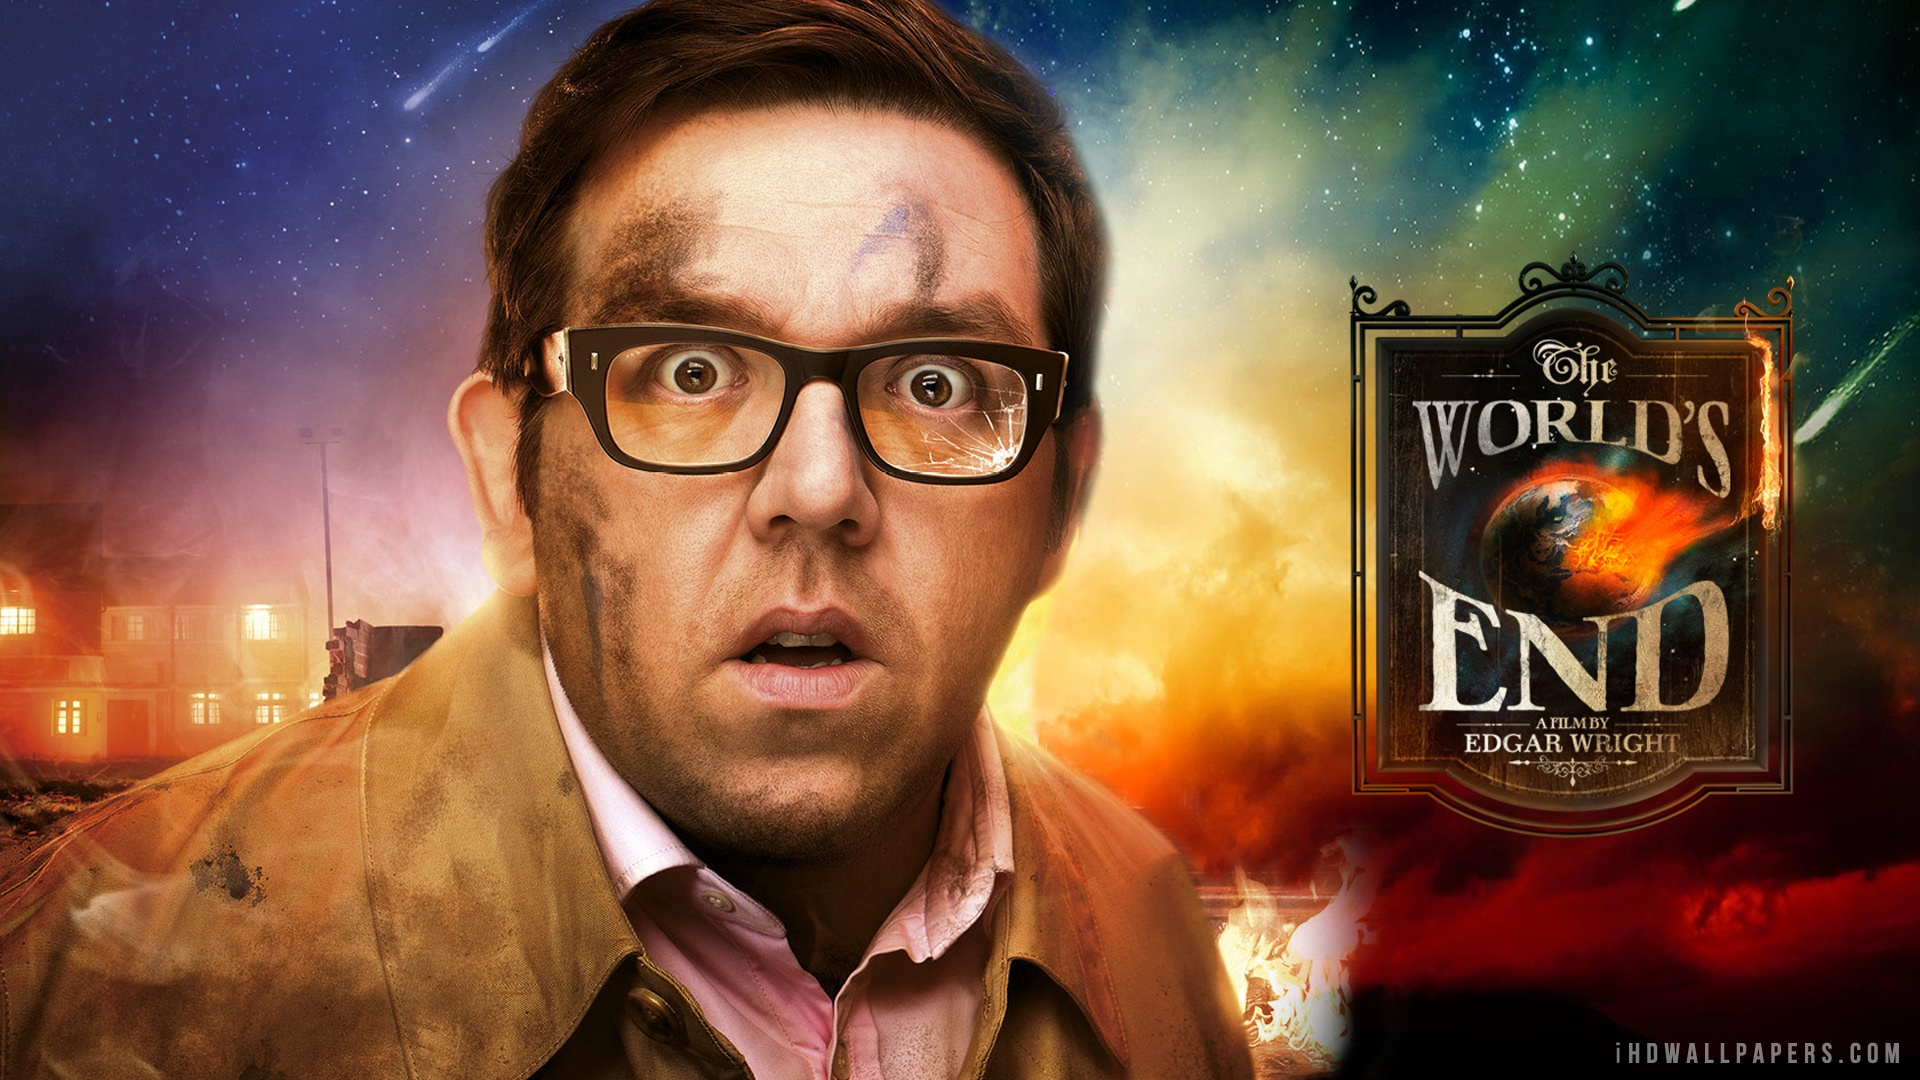 The World's End Nick Frost